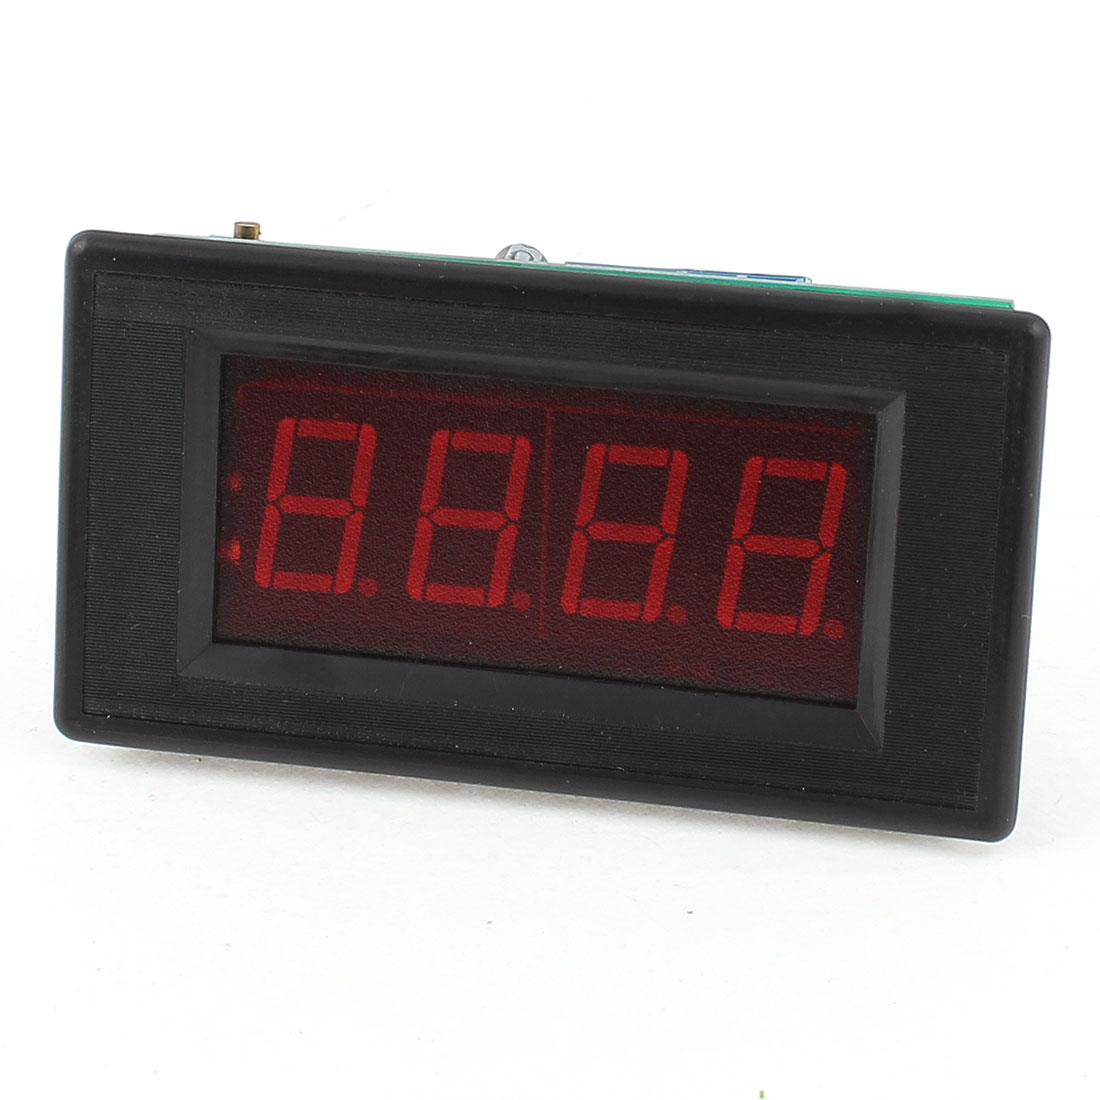 Red LED 0-400 Celsius Degree K Type Digital Thermometer Panel Temperature Meter